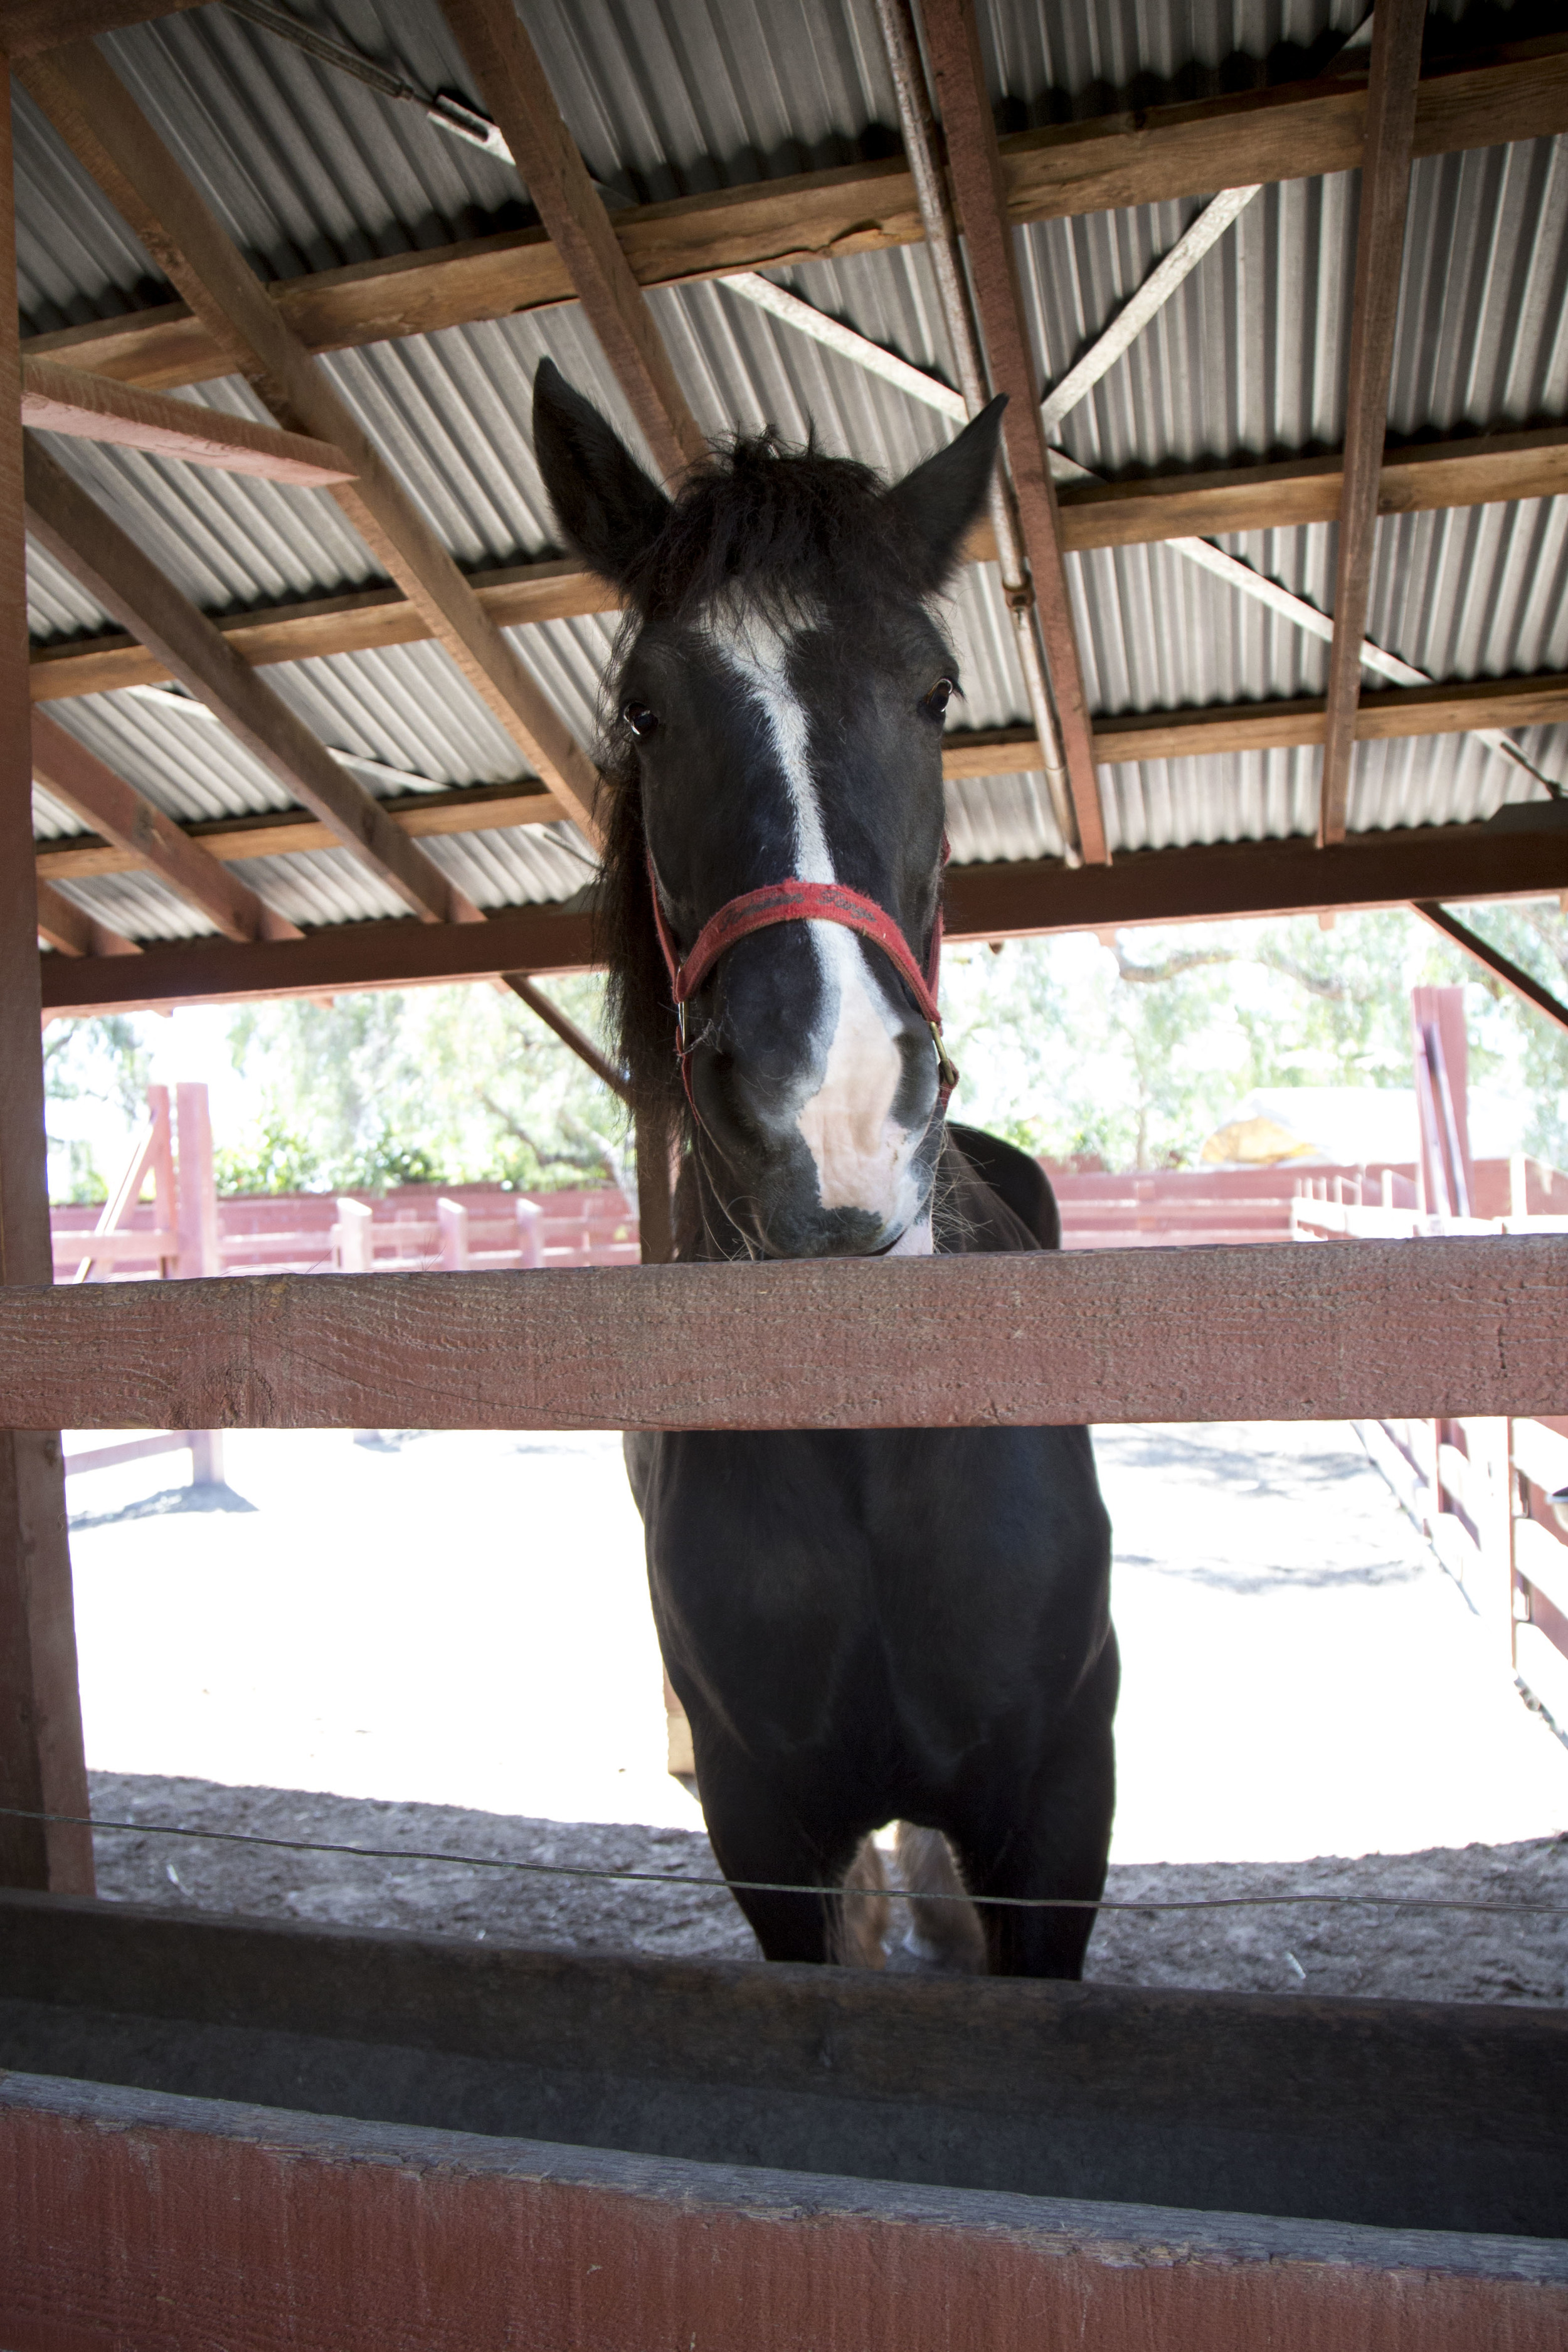 One of two large draft horses kept in the barn